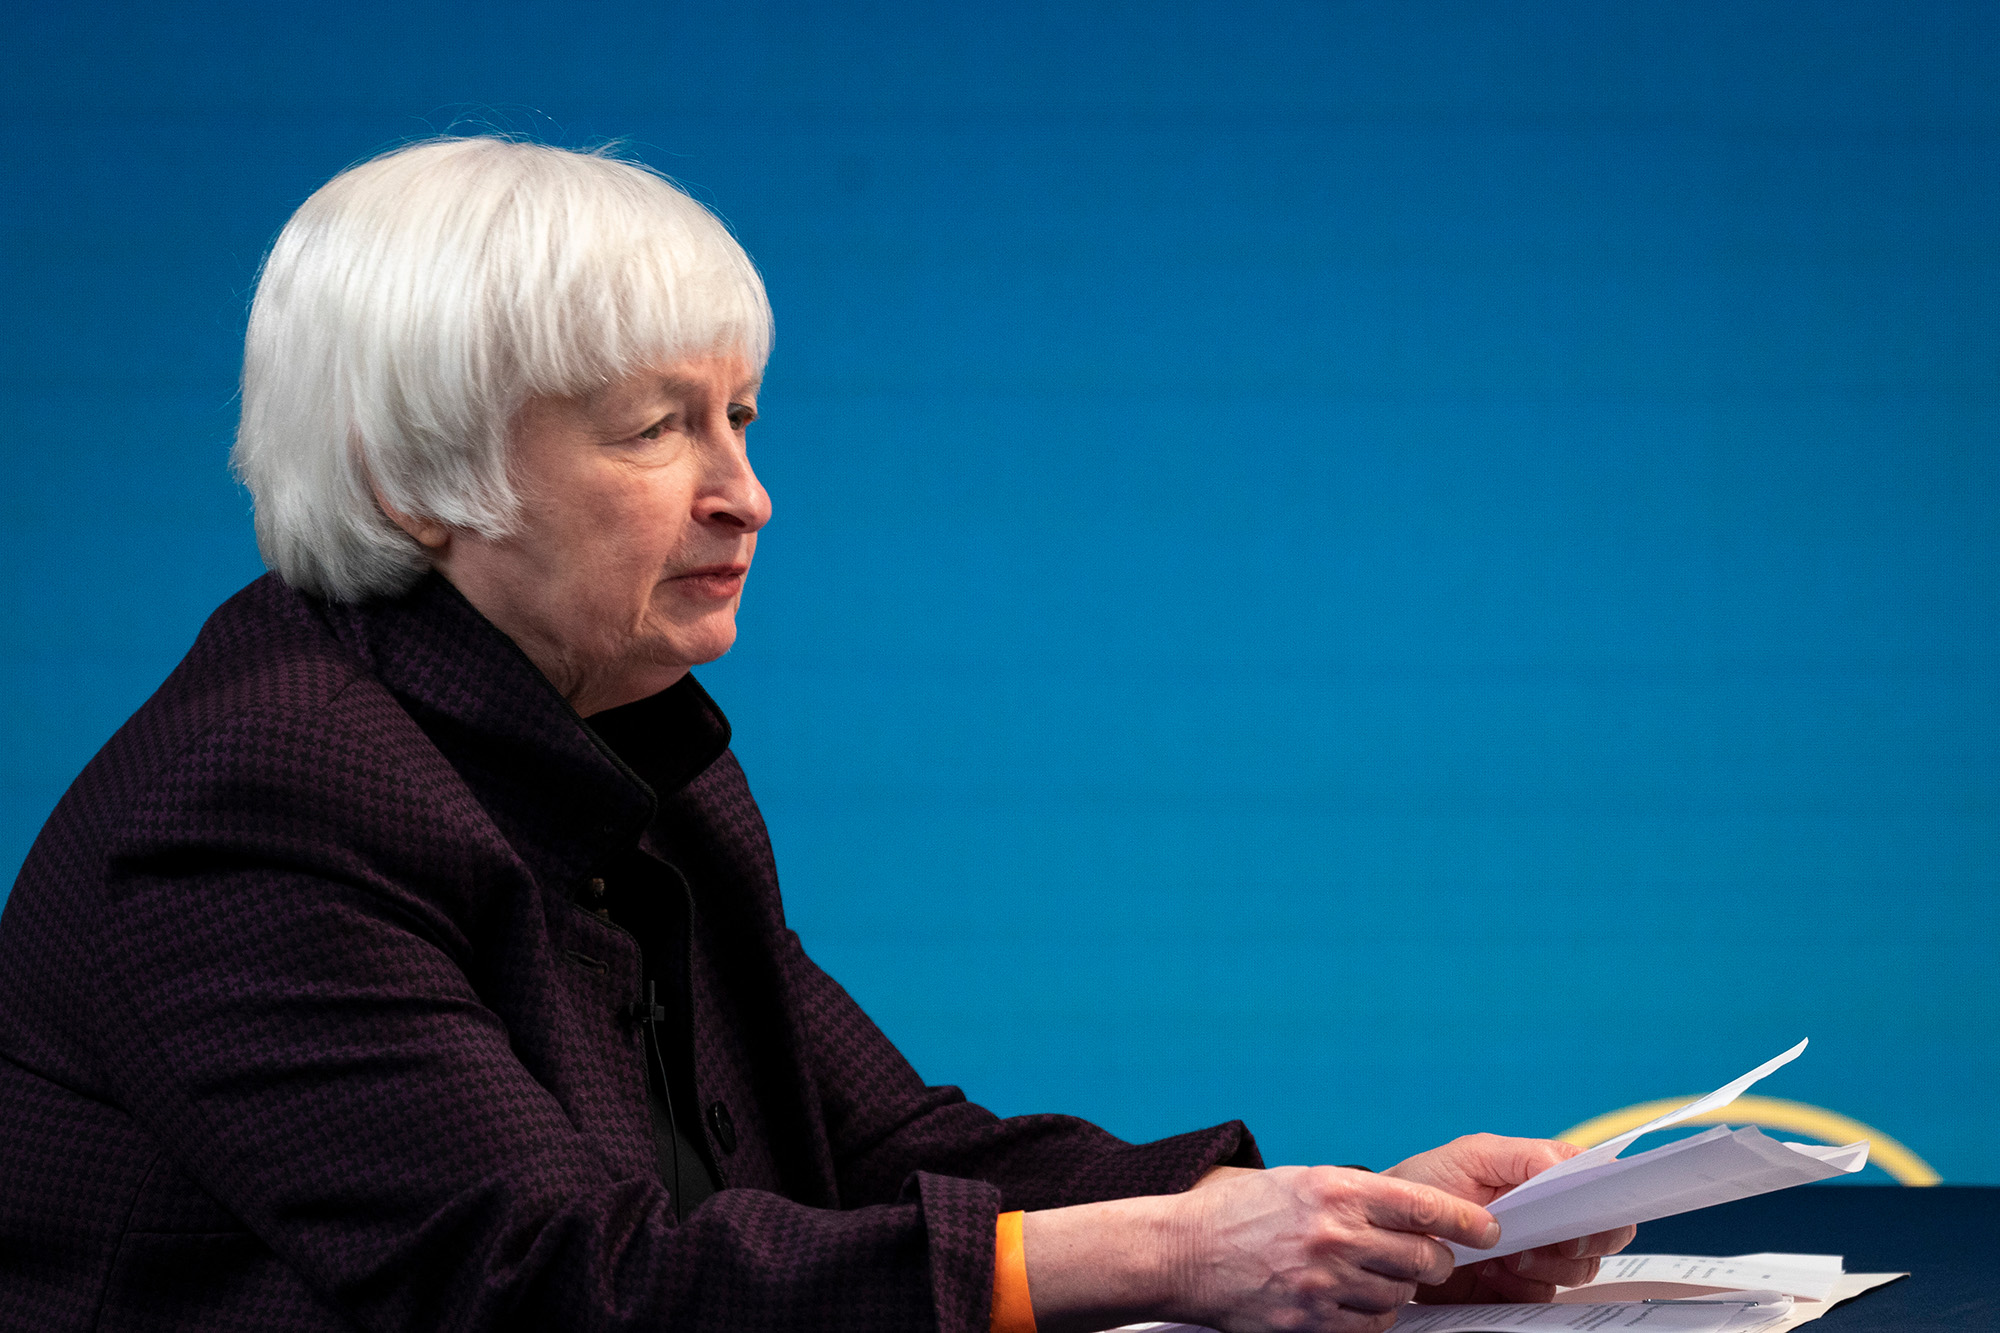 Janet Yellen on what a successful economic recovery looks like